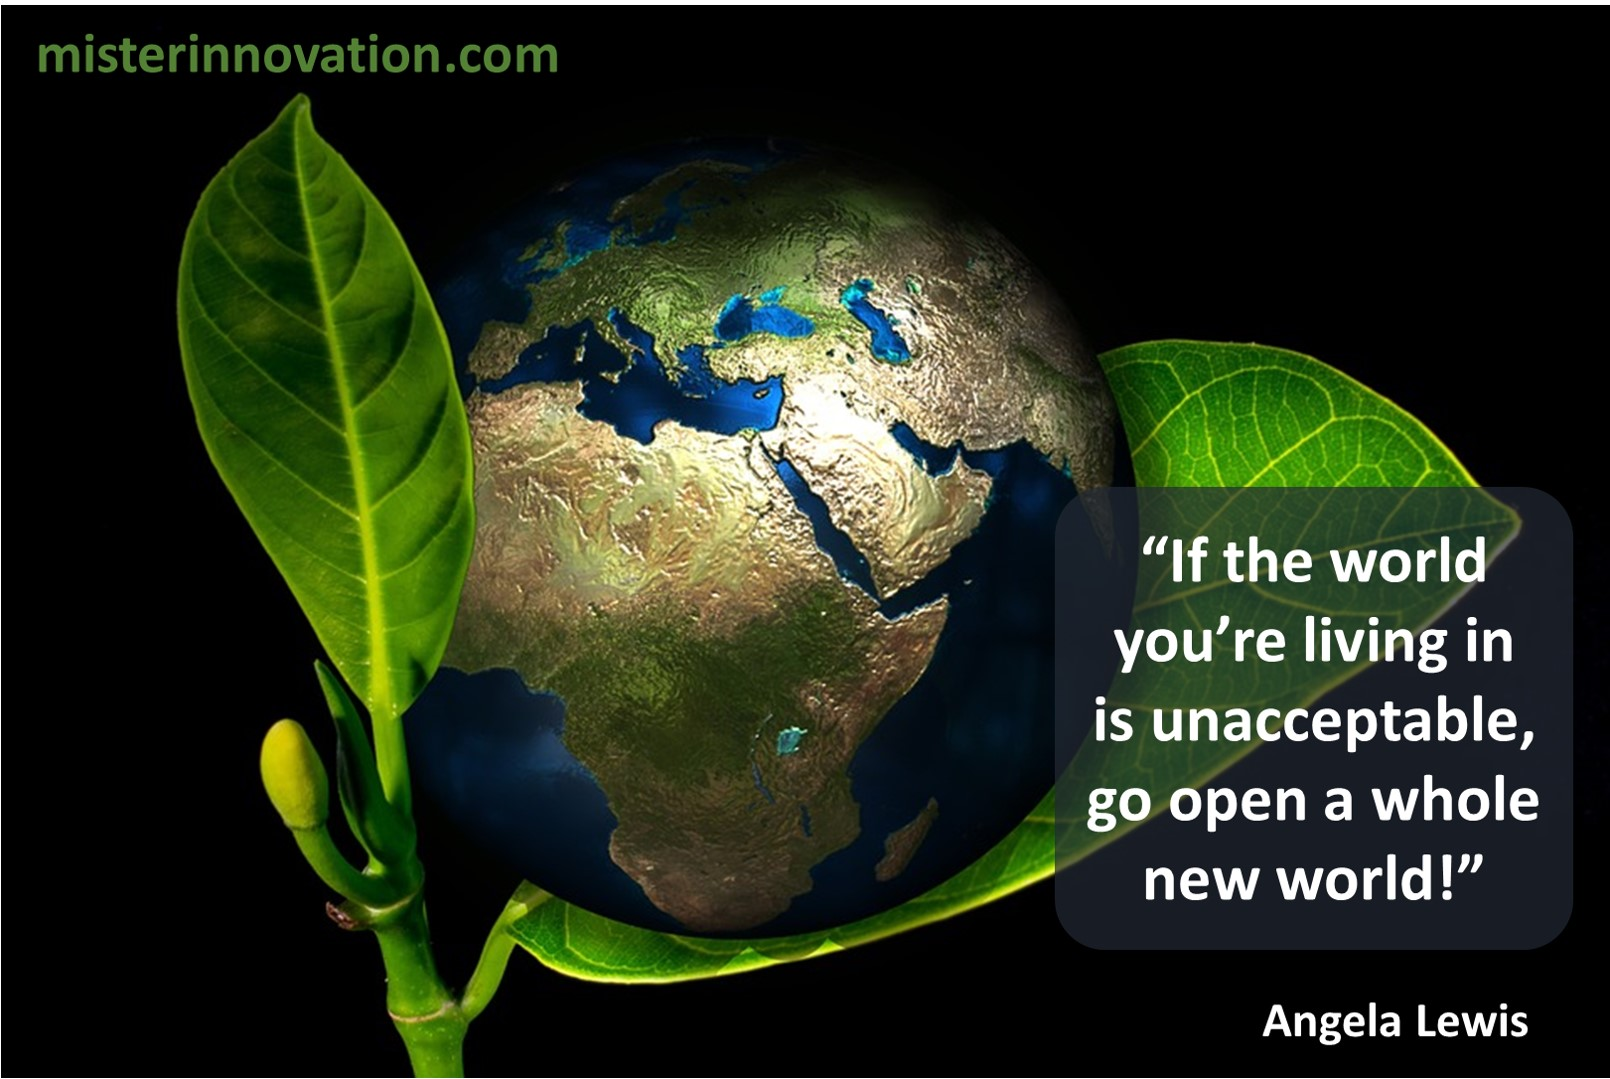 Angela Lewis Quote on Opening a New World